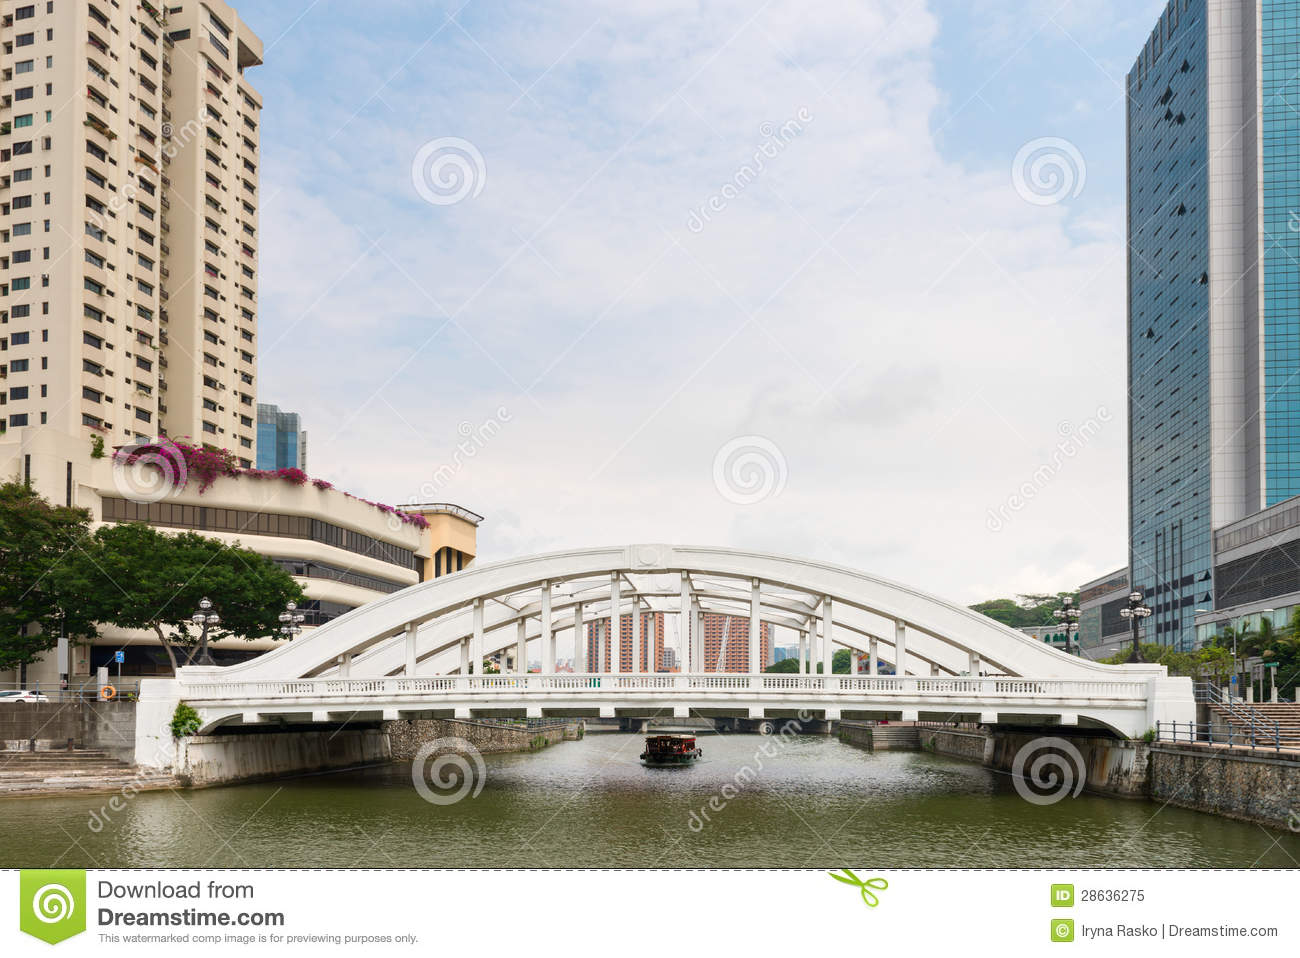 White Elgin Bridge And The Singapore River Stock Image - Image of ...